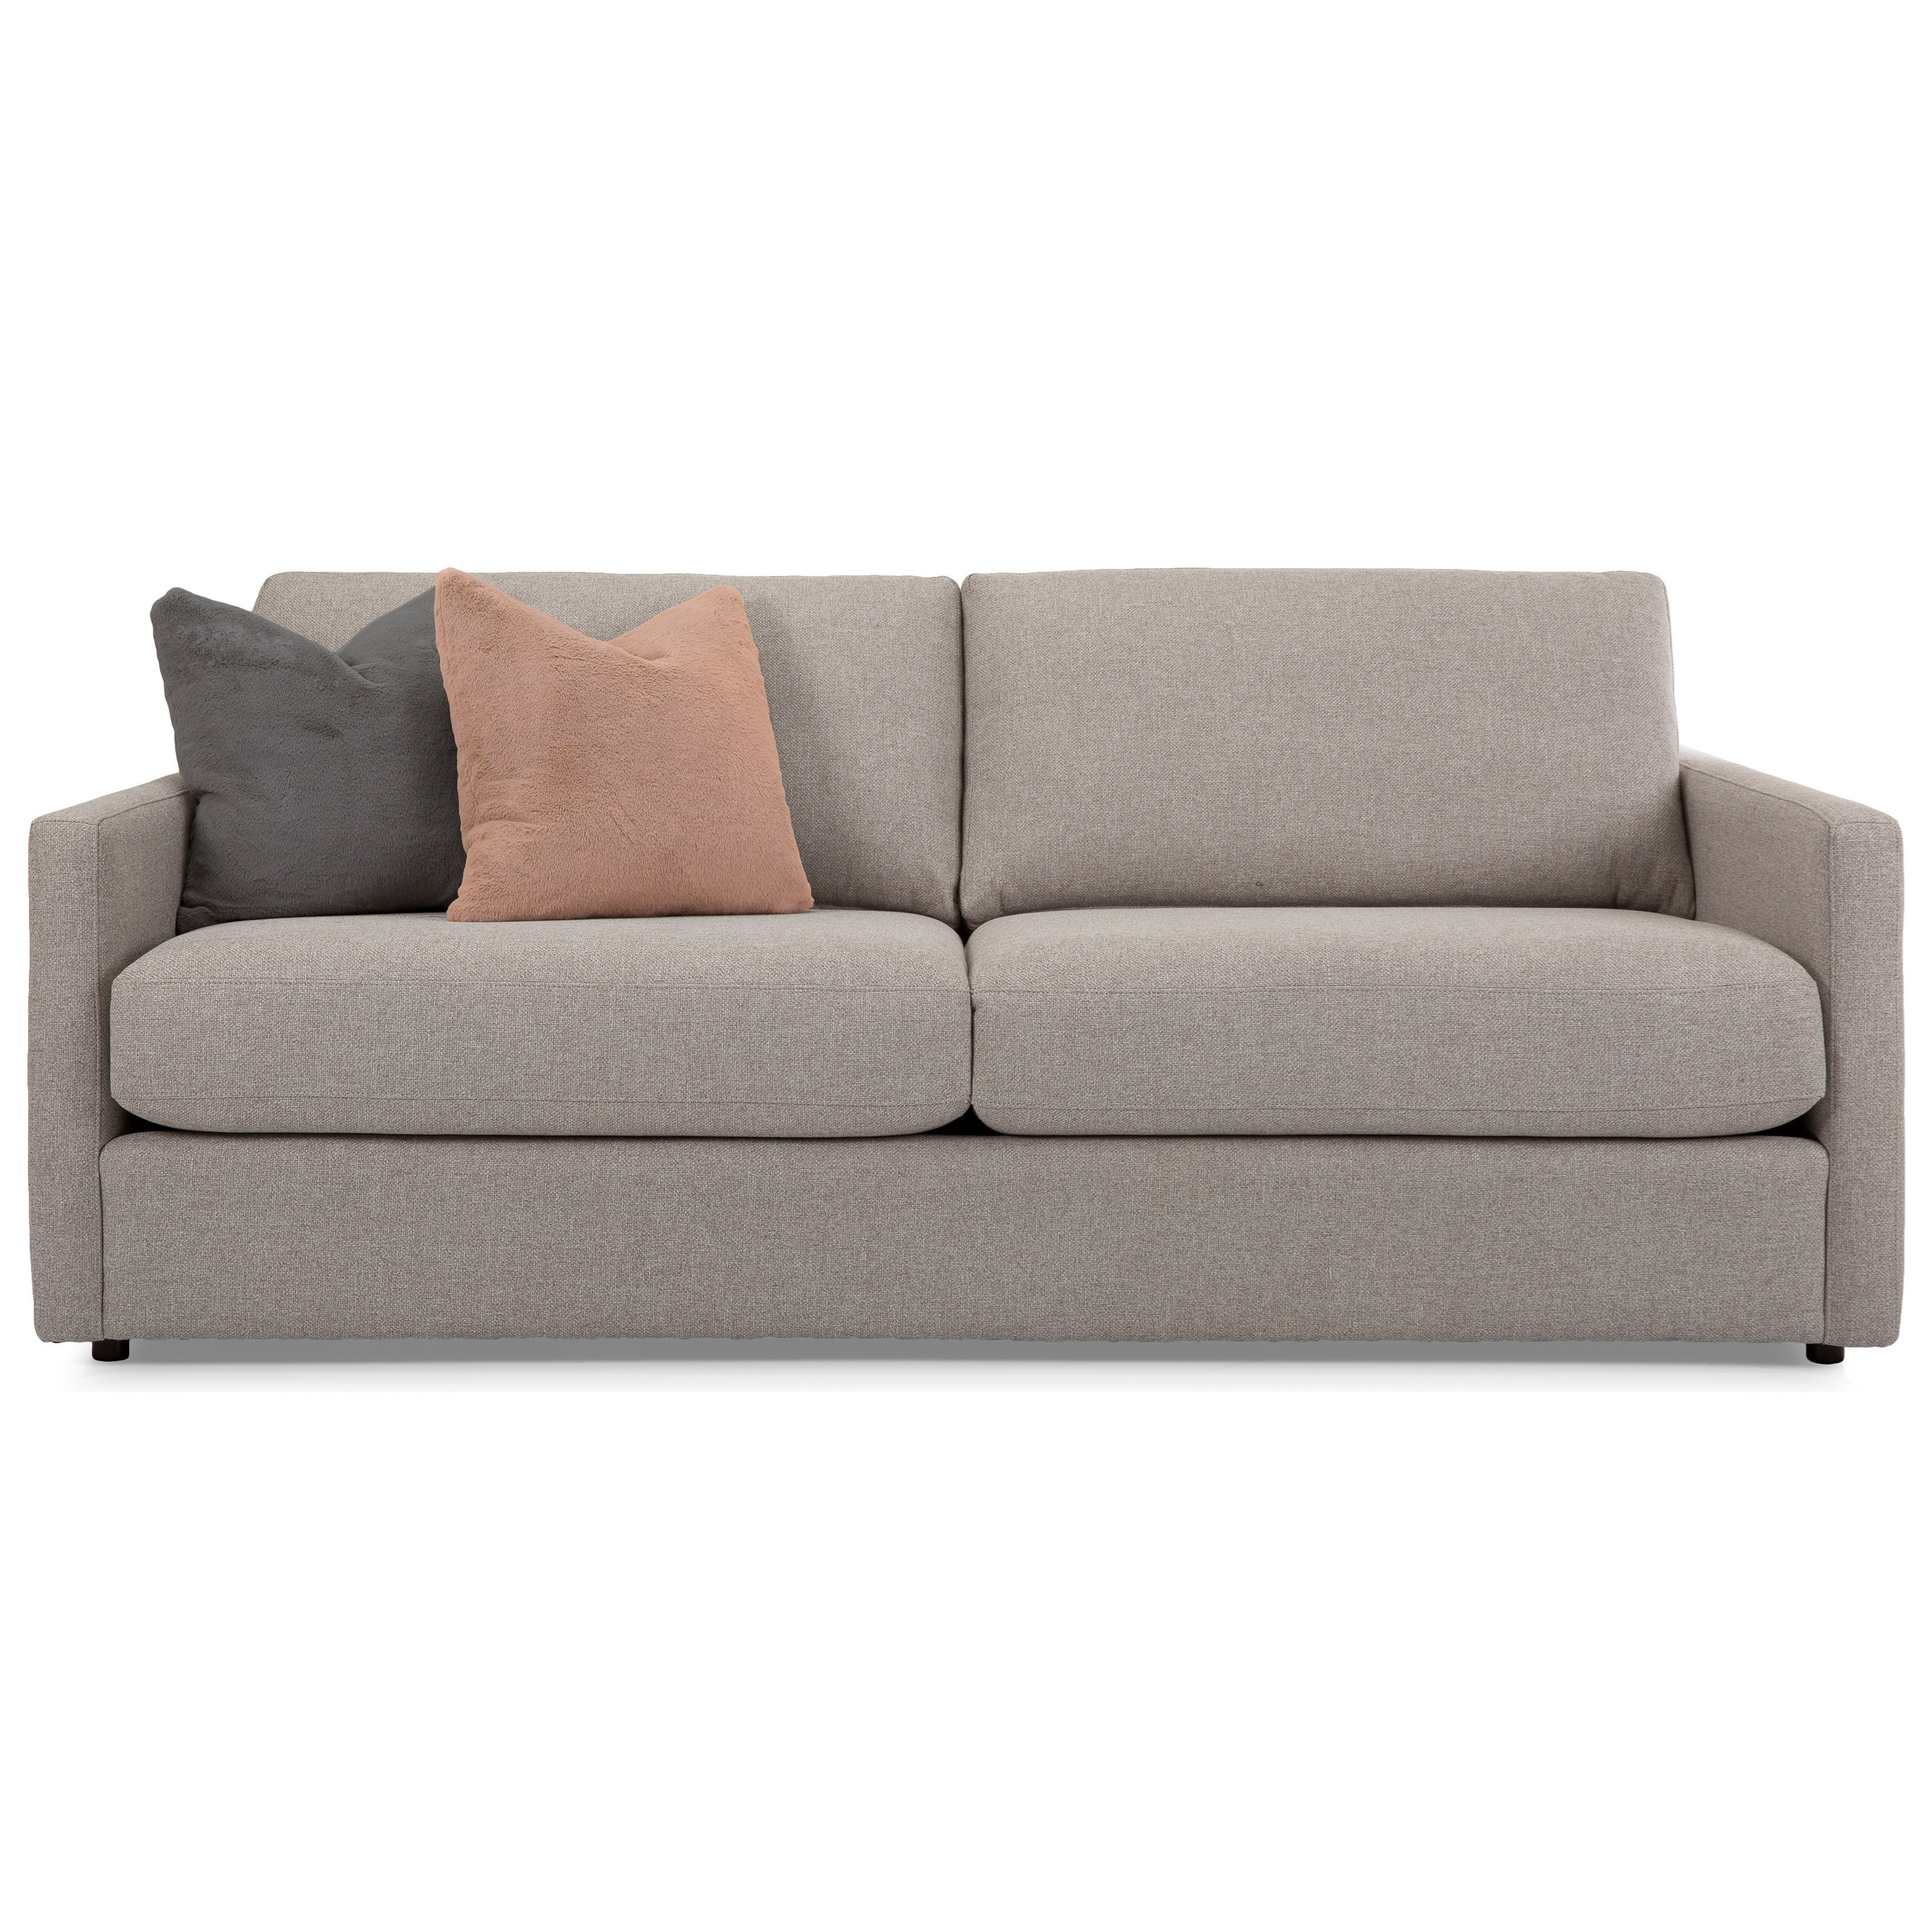 2068 Sofa by Decor-Rest at Rooms for Less